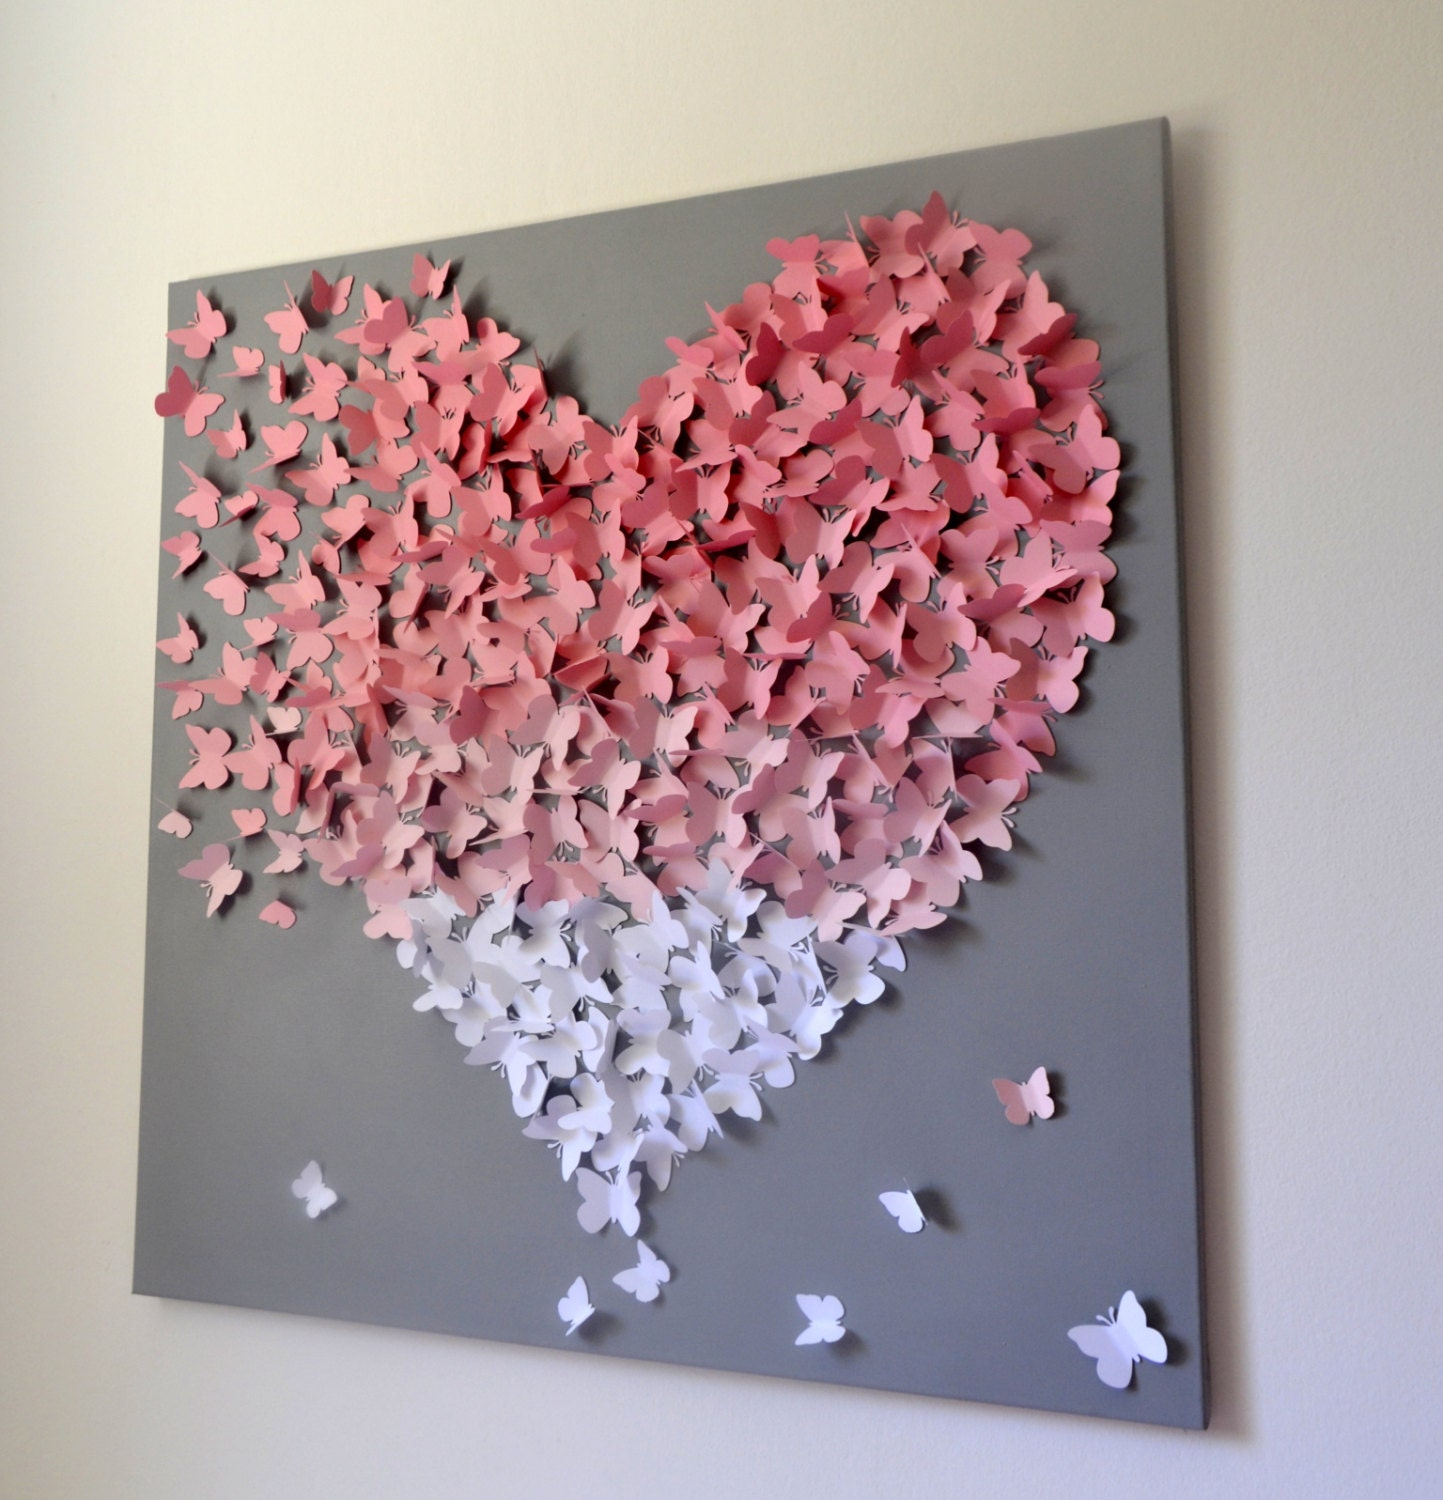 Xl 3d butterfly statement wall art light pink ombre by for Pink wall art